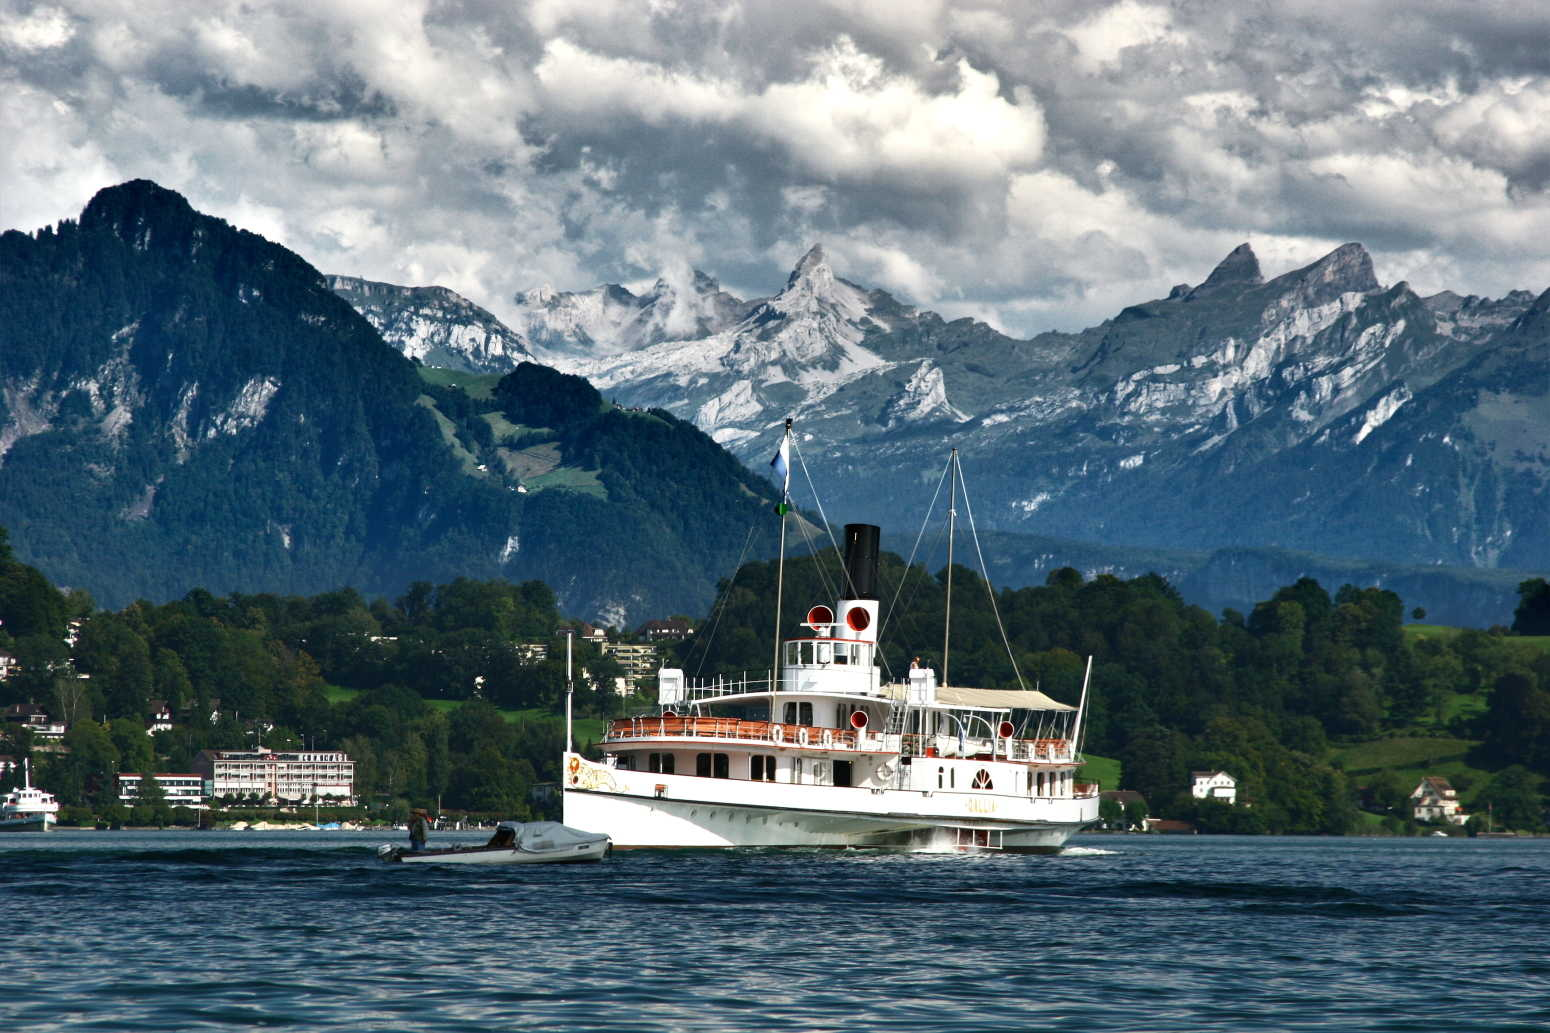 Luzern Lucerne Switzerland Paddle boat lake swiss alps robert peterson photography Compressed